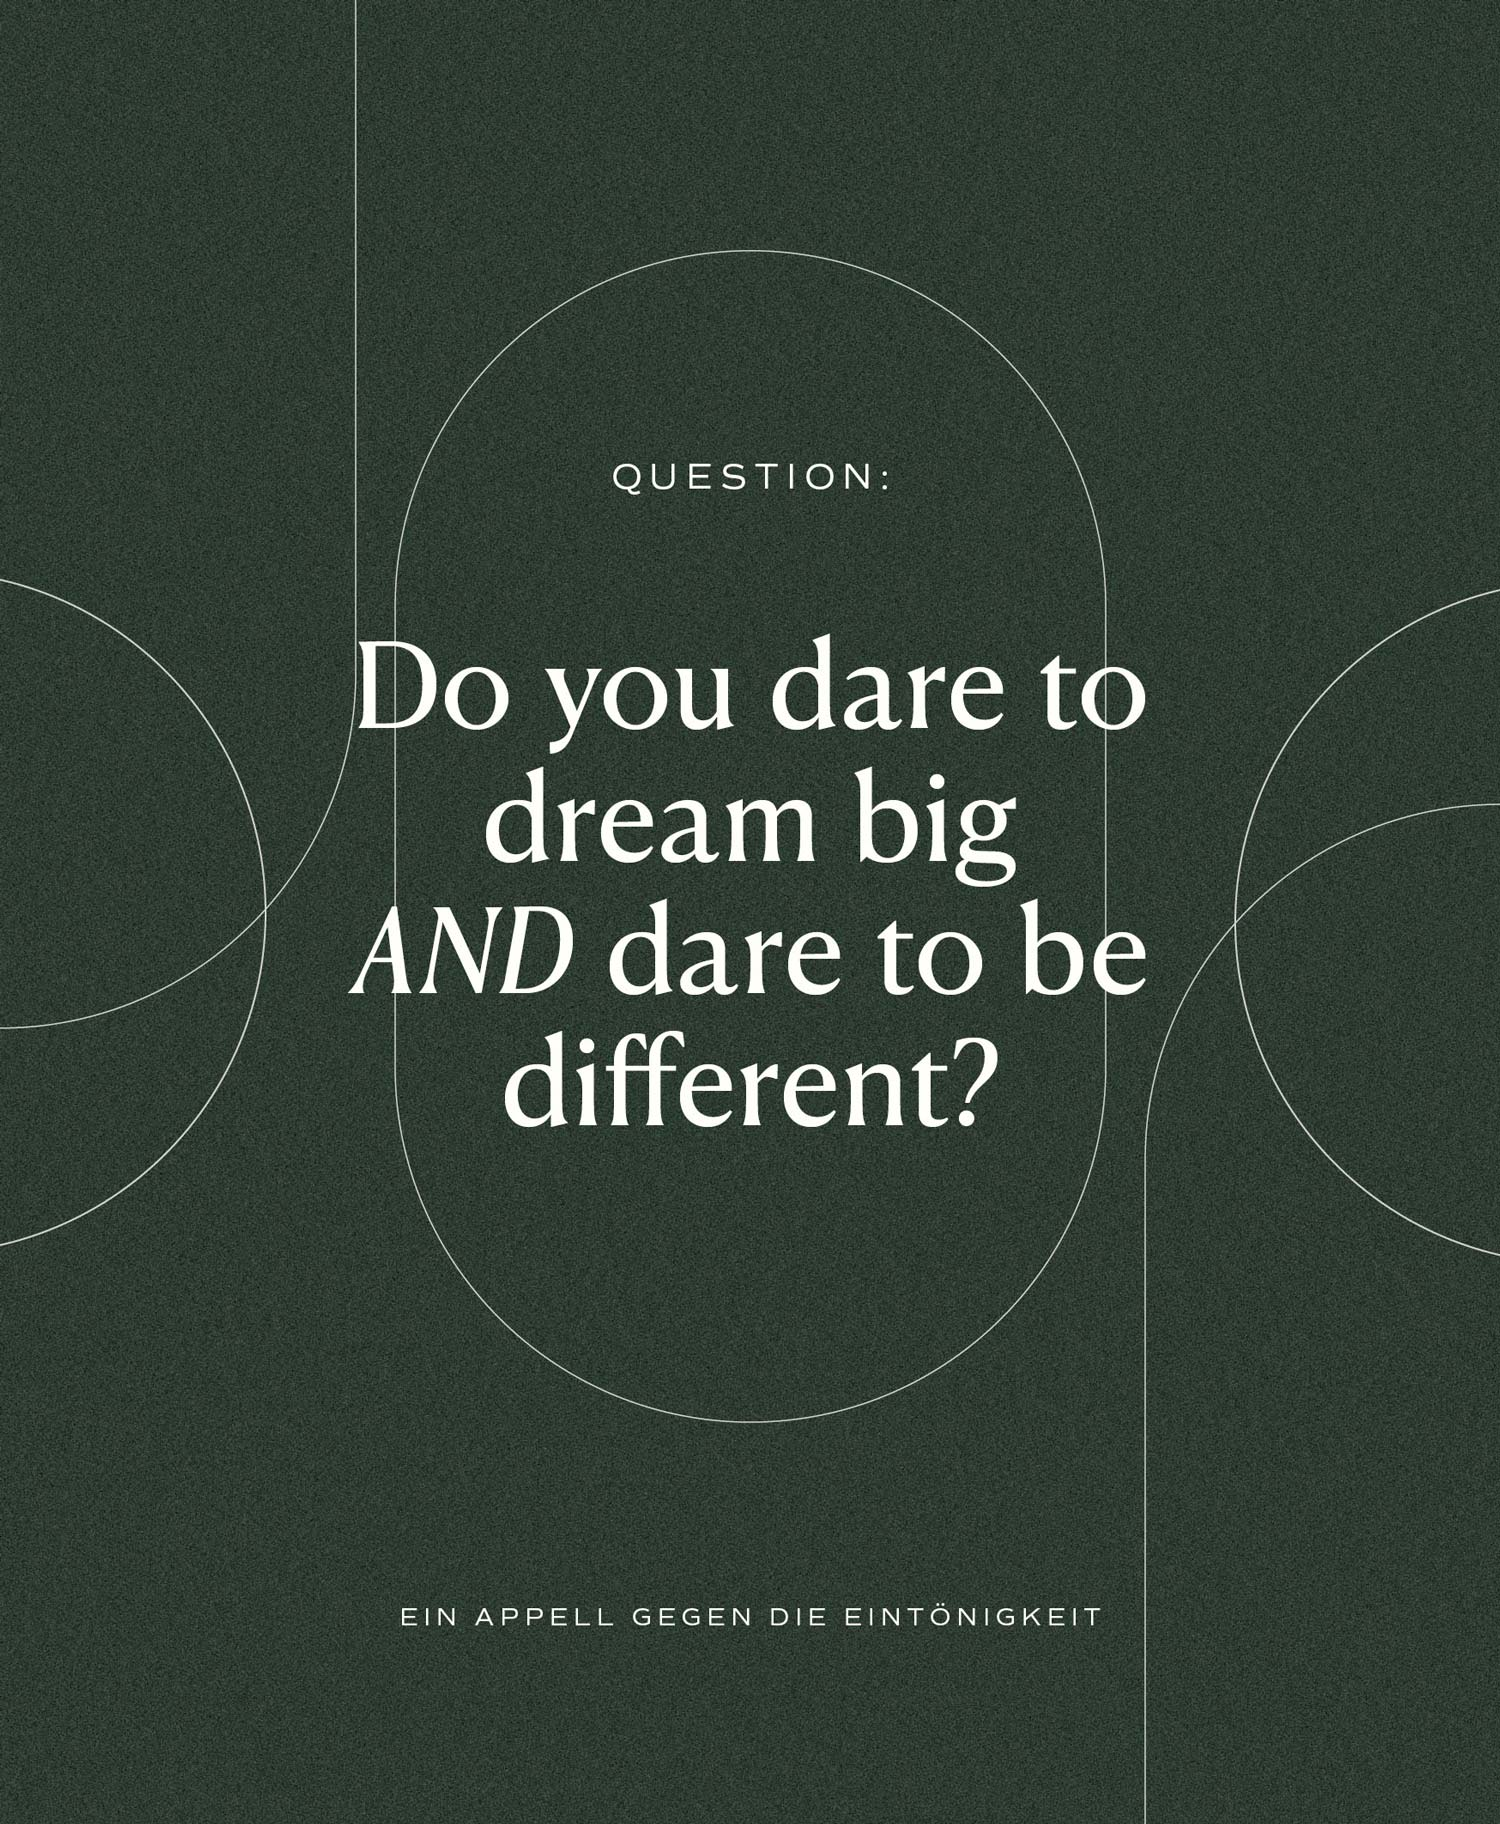 Do you dare to dream big AND dare to be different?